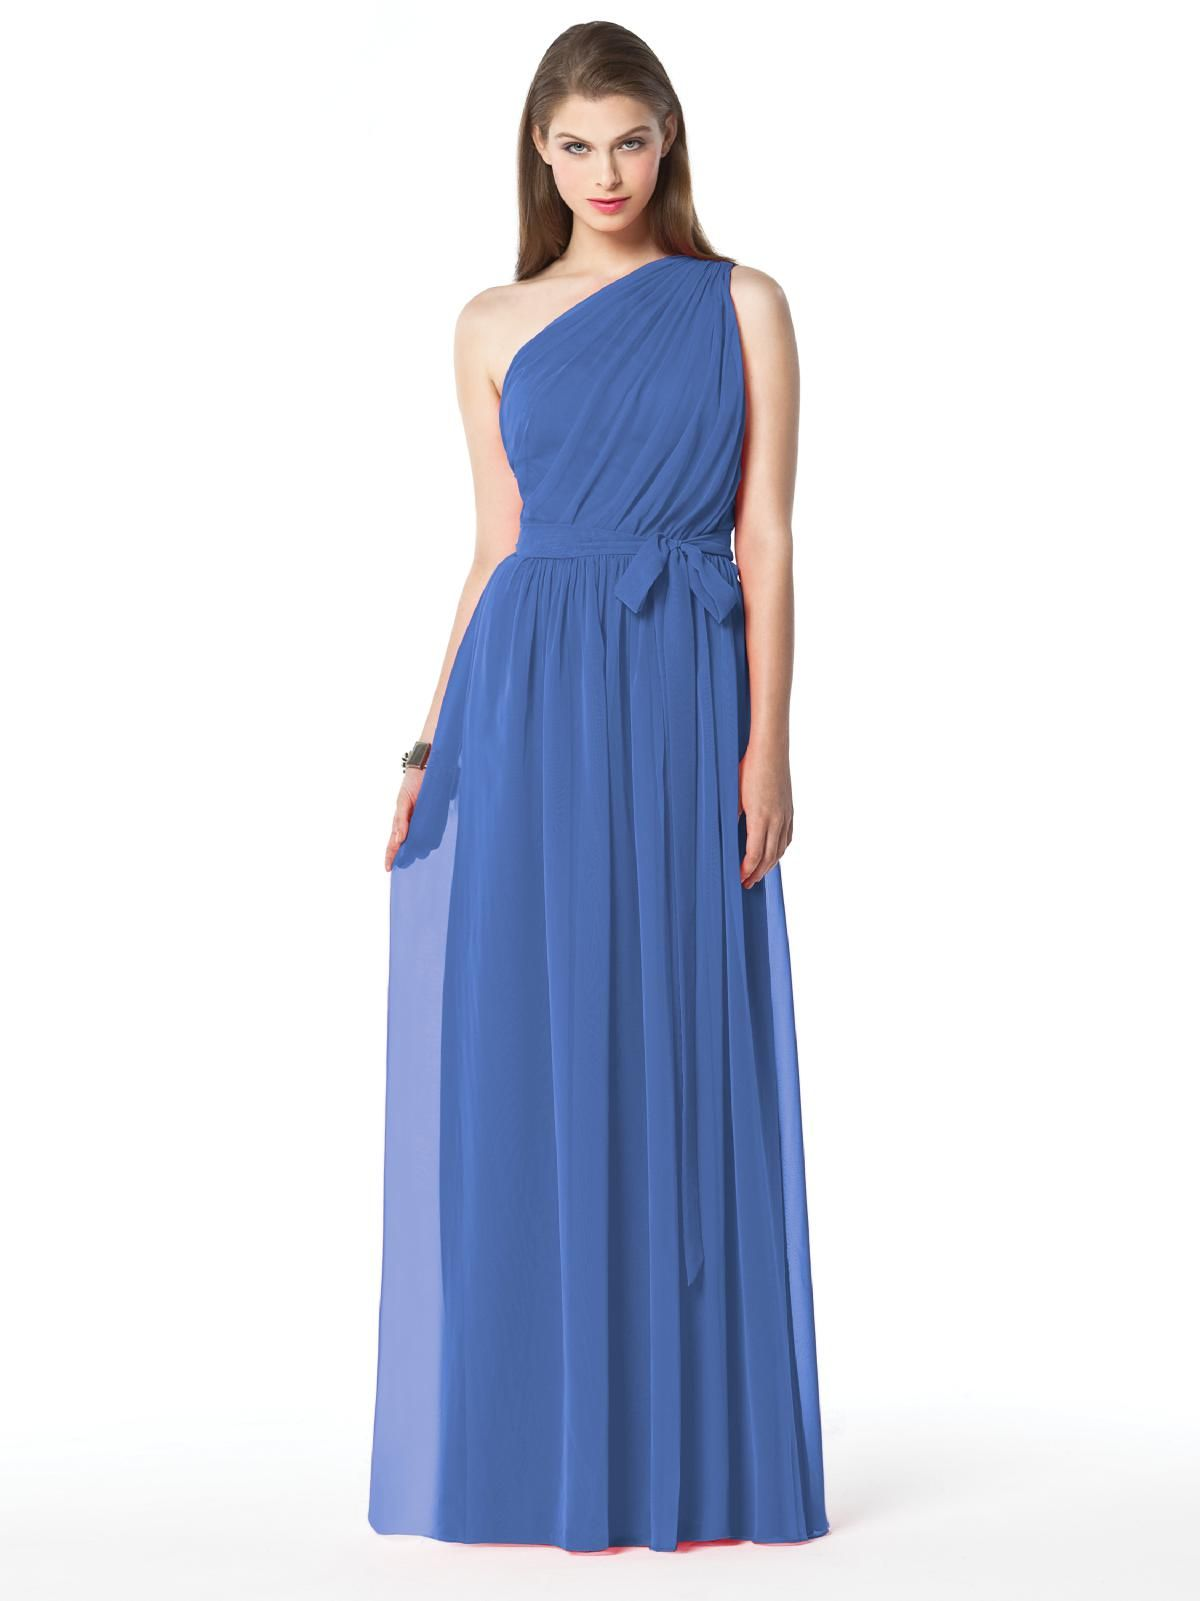 Dessy one shoulder bridesmaid dress in cornflower blue nautical dessy one shoulder bridesmaid dress in cornflower blue ombrellifo Images